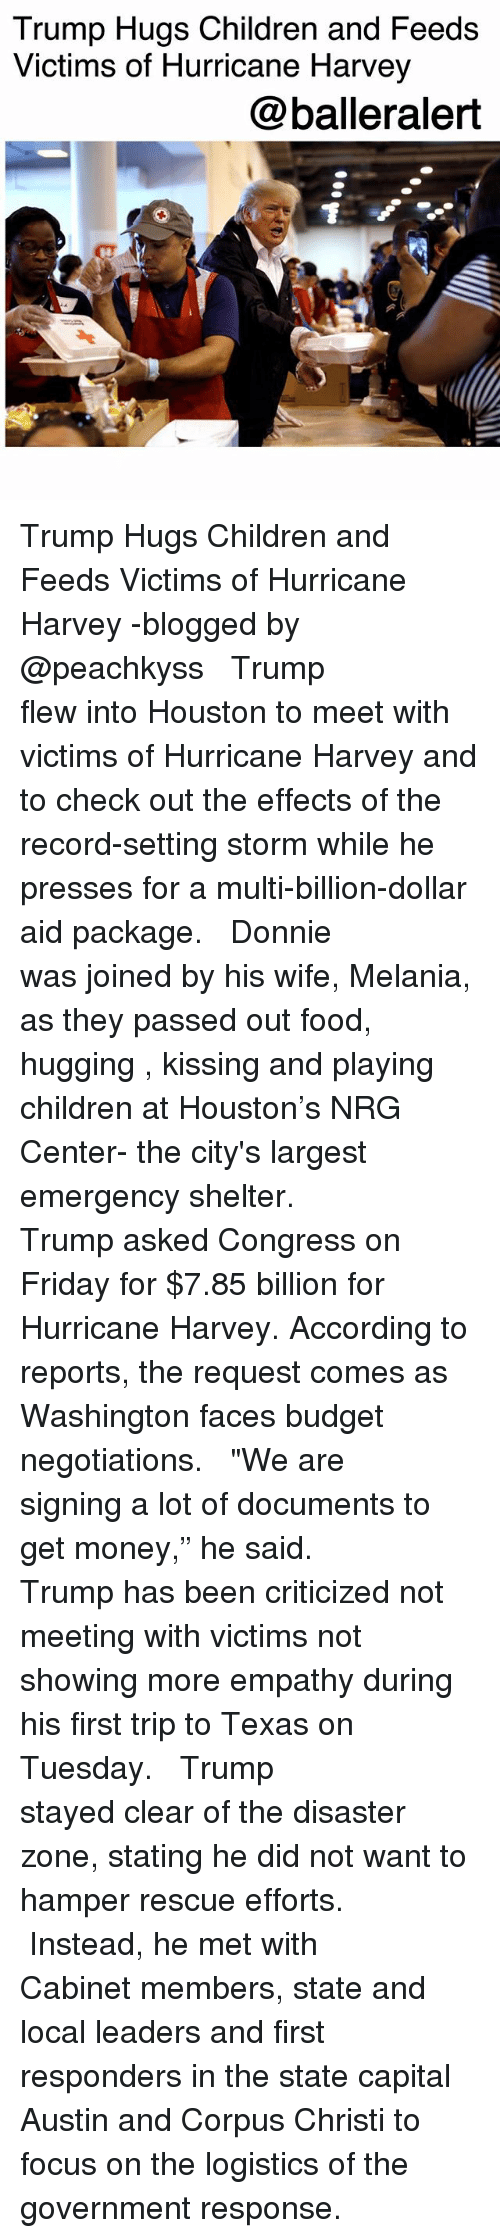 "Getting Money: Trump Hugs Children and Feeds  Victims of Hurricane Harvey  @balleralert Trump Hugs Children and Feeds Victims of Hurricane Harvey -blogged by @peachkyss ⠀⠀⠀⠀⠀⠀⠀ ⠀⠀⠀⠀⠀⠀⠀ Trump flew into Houston to meet with victims of Hurricane Harvey and to check out the effects of the record-setting storm while he presses for a multi-billion-dollar aid package. ⠀⠀⠀⠀⠀⠀⠀ ⠀⠀⠀⠀⠀⠀⠀ Donnie was joined by his wife, Melania, as they passed out food, hugging , kissing and playing children at Houston's NRG Center- the city's largest emergency shelter. ⠀⠀⠀⠀⠀⠀⠀ ⠀⠀⠀⠀⠀⠀⠀ Trump asked Congress on Friday for $7.85 billion for Hurricane Harvey. According to reports, the request comes as Washington faces budget negotiations. ⠀⠀⠀⠀⠀⠀⠀ ⠀⠀⠀⠀⠀⠀⠀ ""We are signing a lot of documents to get money,"" he said. ⠀⠀⠀⠀⠀⠀⠀ ⠀⠀⠀⠀⠀⠀⠀ Trump has been criticized not meeting with victims not showing more empathy during his first trip to Texas on Tuesday. ⠀⠀⠀⠀⠀⠀⠀ ⠀⠀⠀⠀⠀⠀⠀ Trump stayed clear of the disaster zone, stating he did not want to hamper rescue efforts. ⠀⠀⠀⠀⠀⠀⠀ ⠀⠀⠀⠀⠀⠀⠀ Instead, he met with Cabinet members, state and local leaders and first responders in the state capital Austin and Corpus Christi to focus on the logistics of the government response."